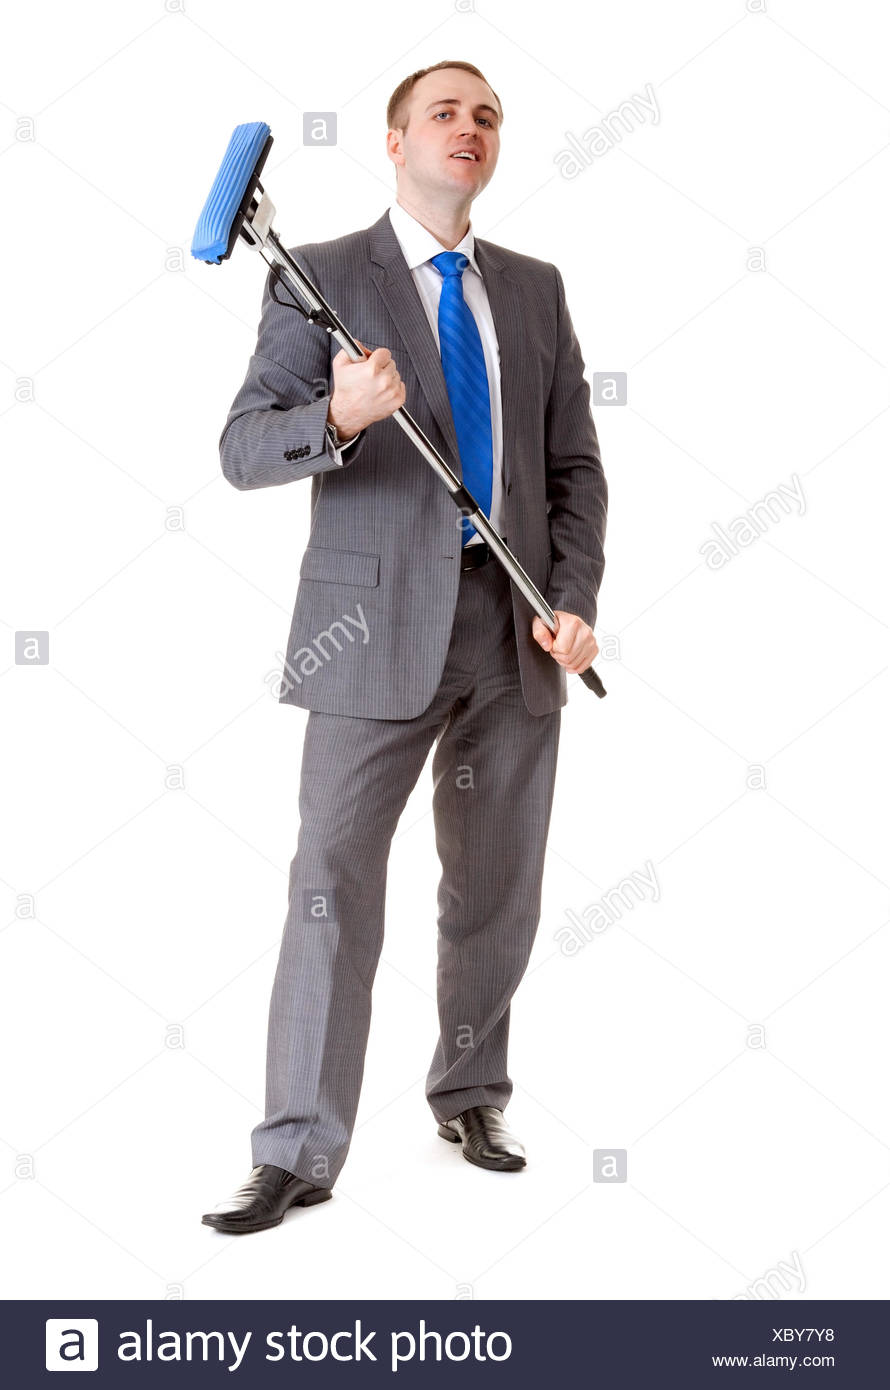 Businessman with a mop - Stock Image